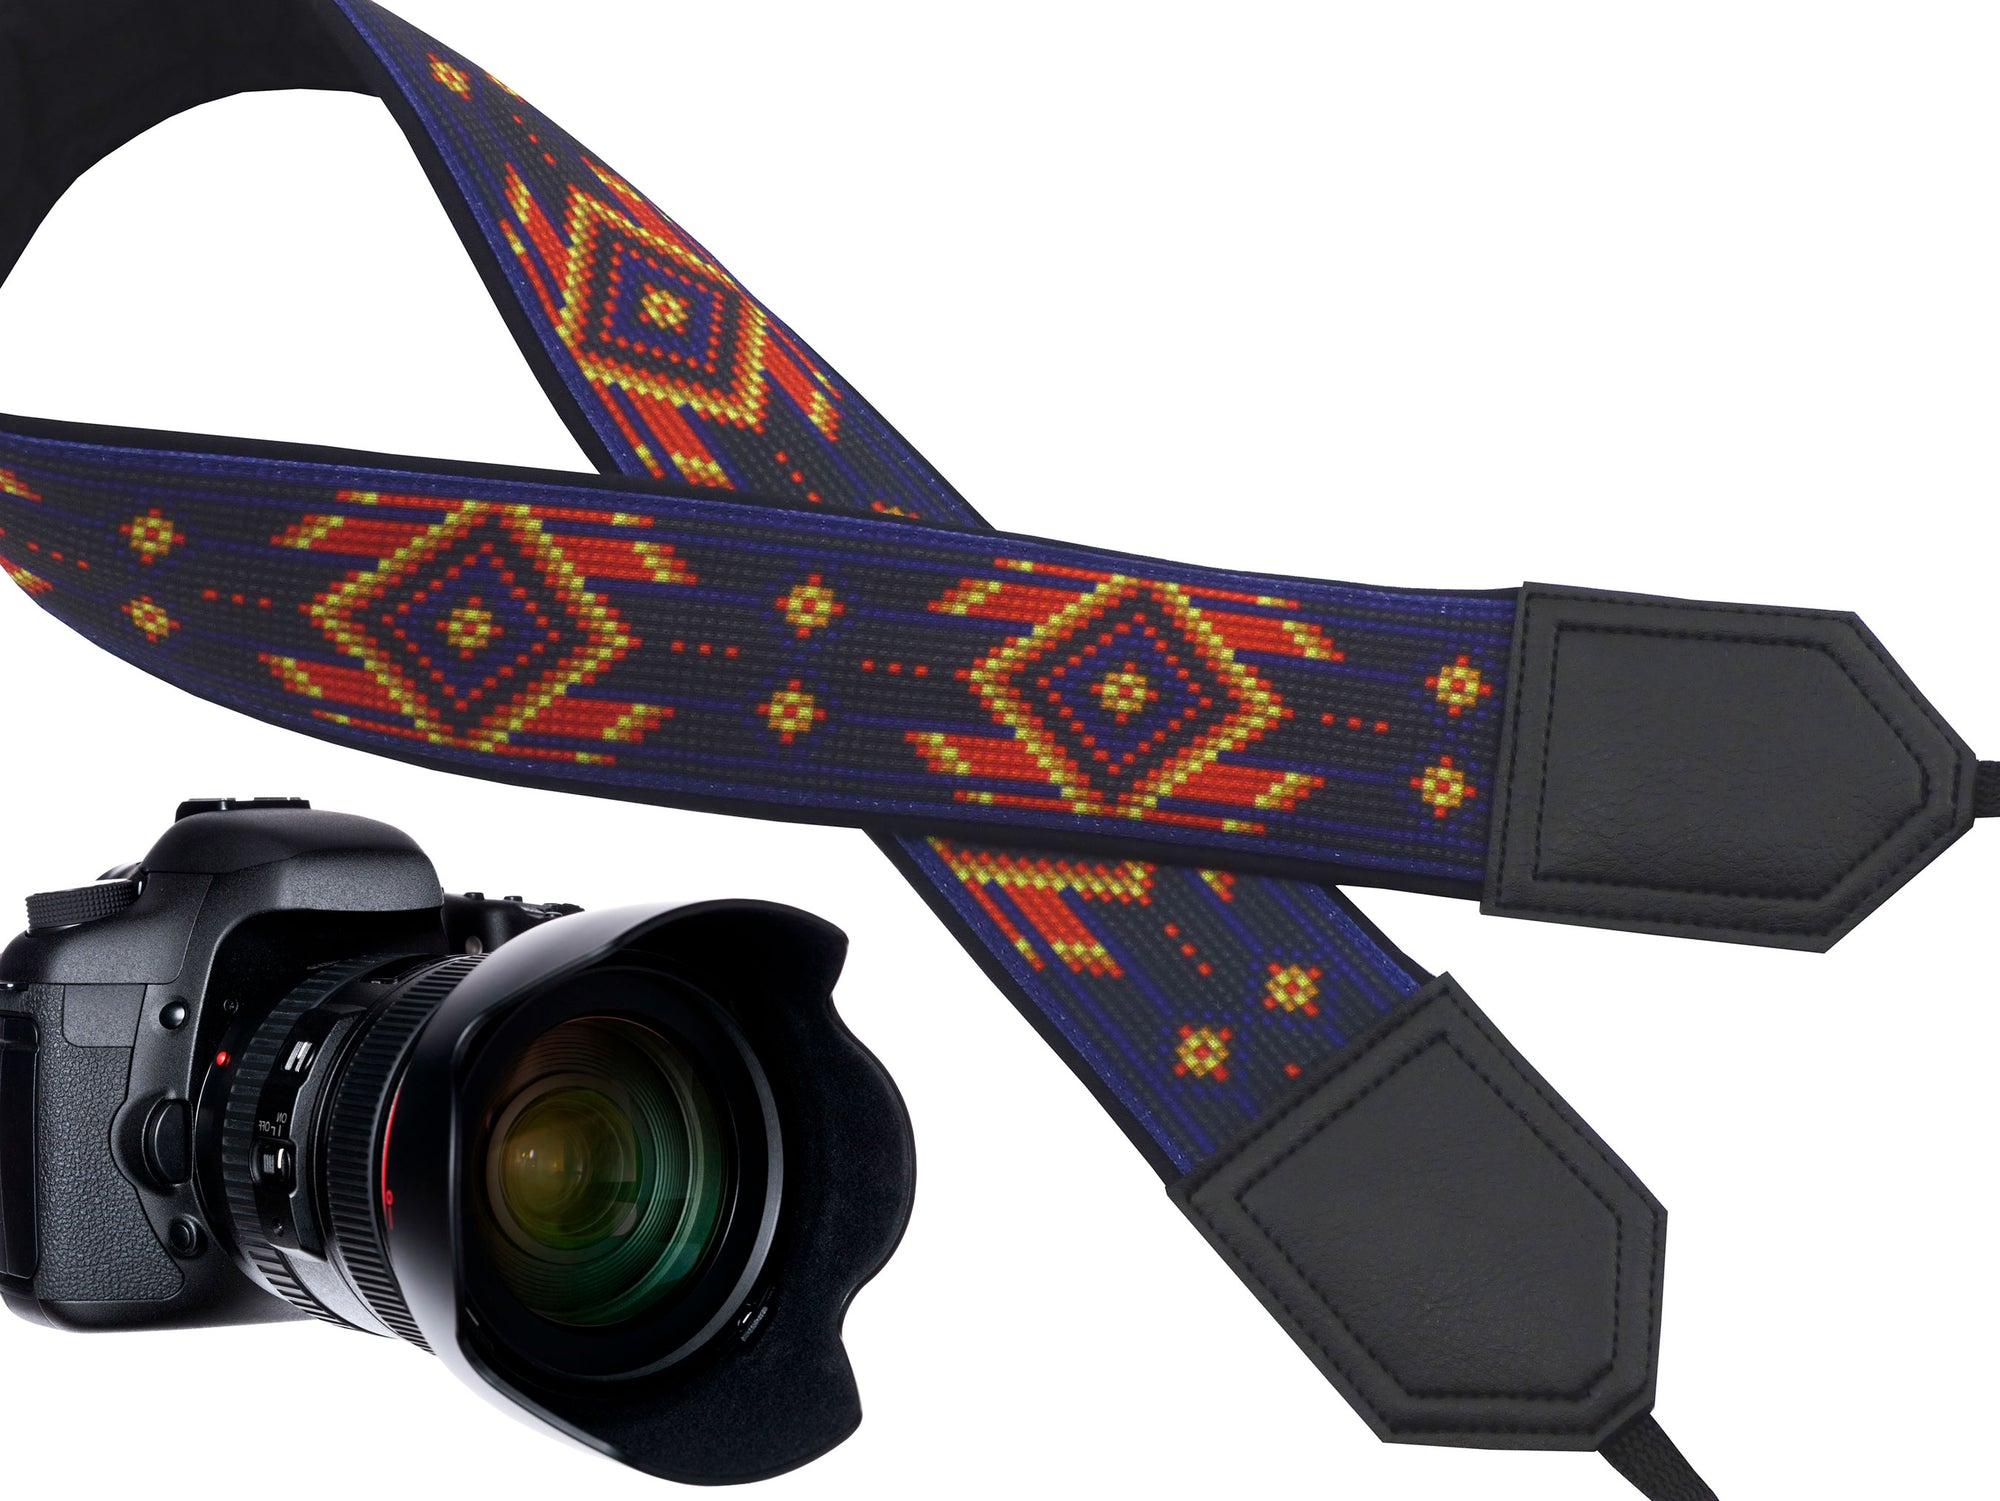 Personalized camera strap with native design. Purple camera strap for most DSLR and SLR cameras. Photo accessory by InTePro.